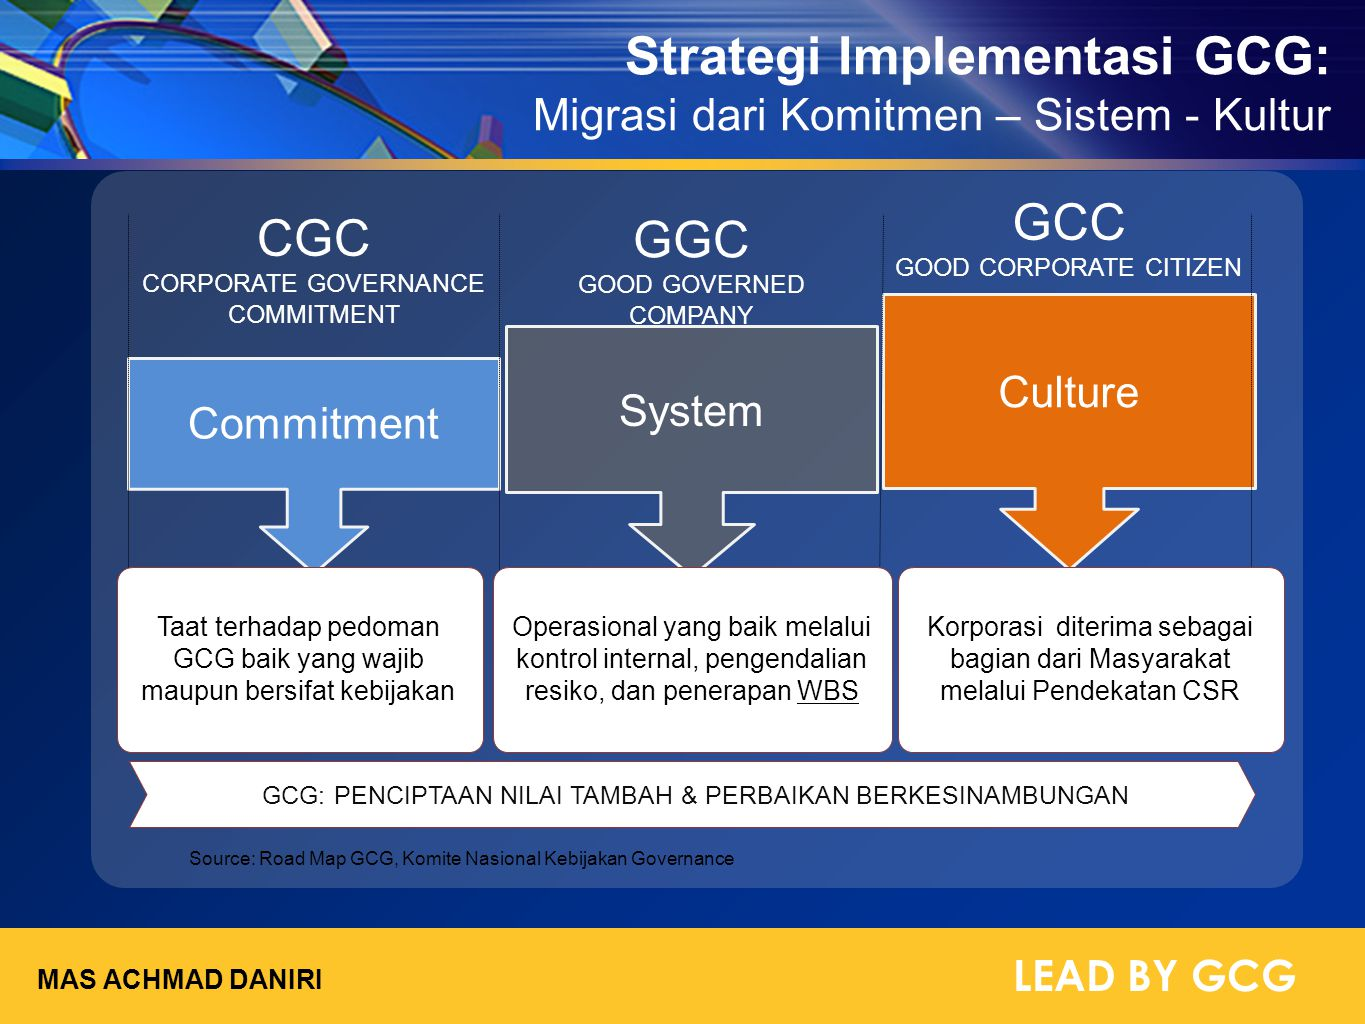 Strategi Implementasi GCG: